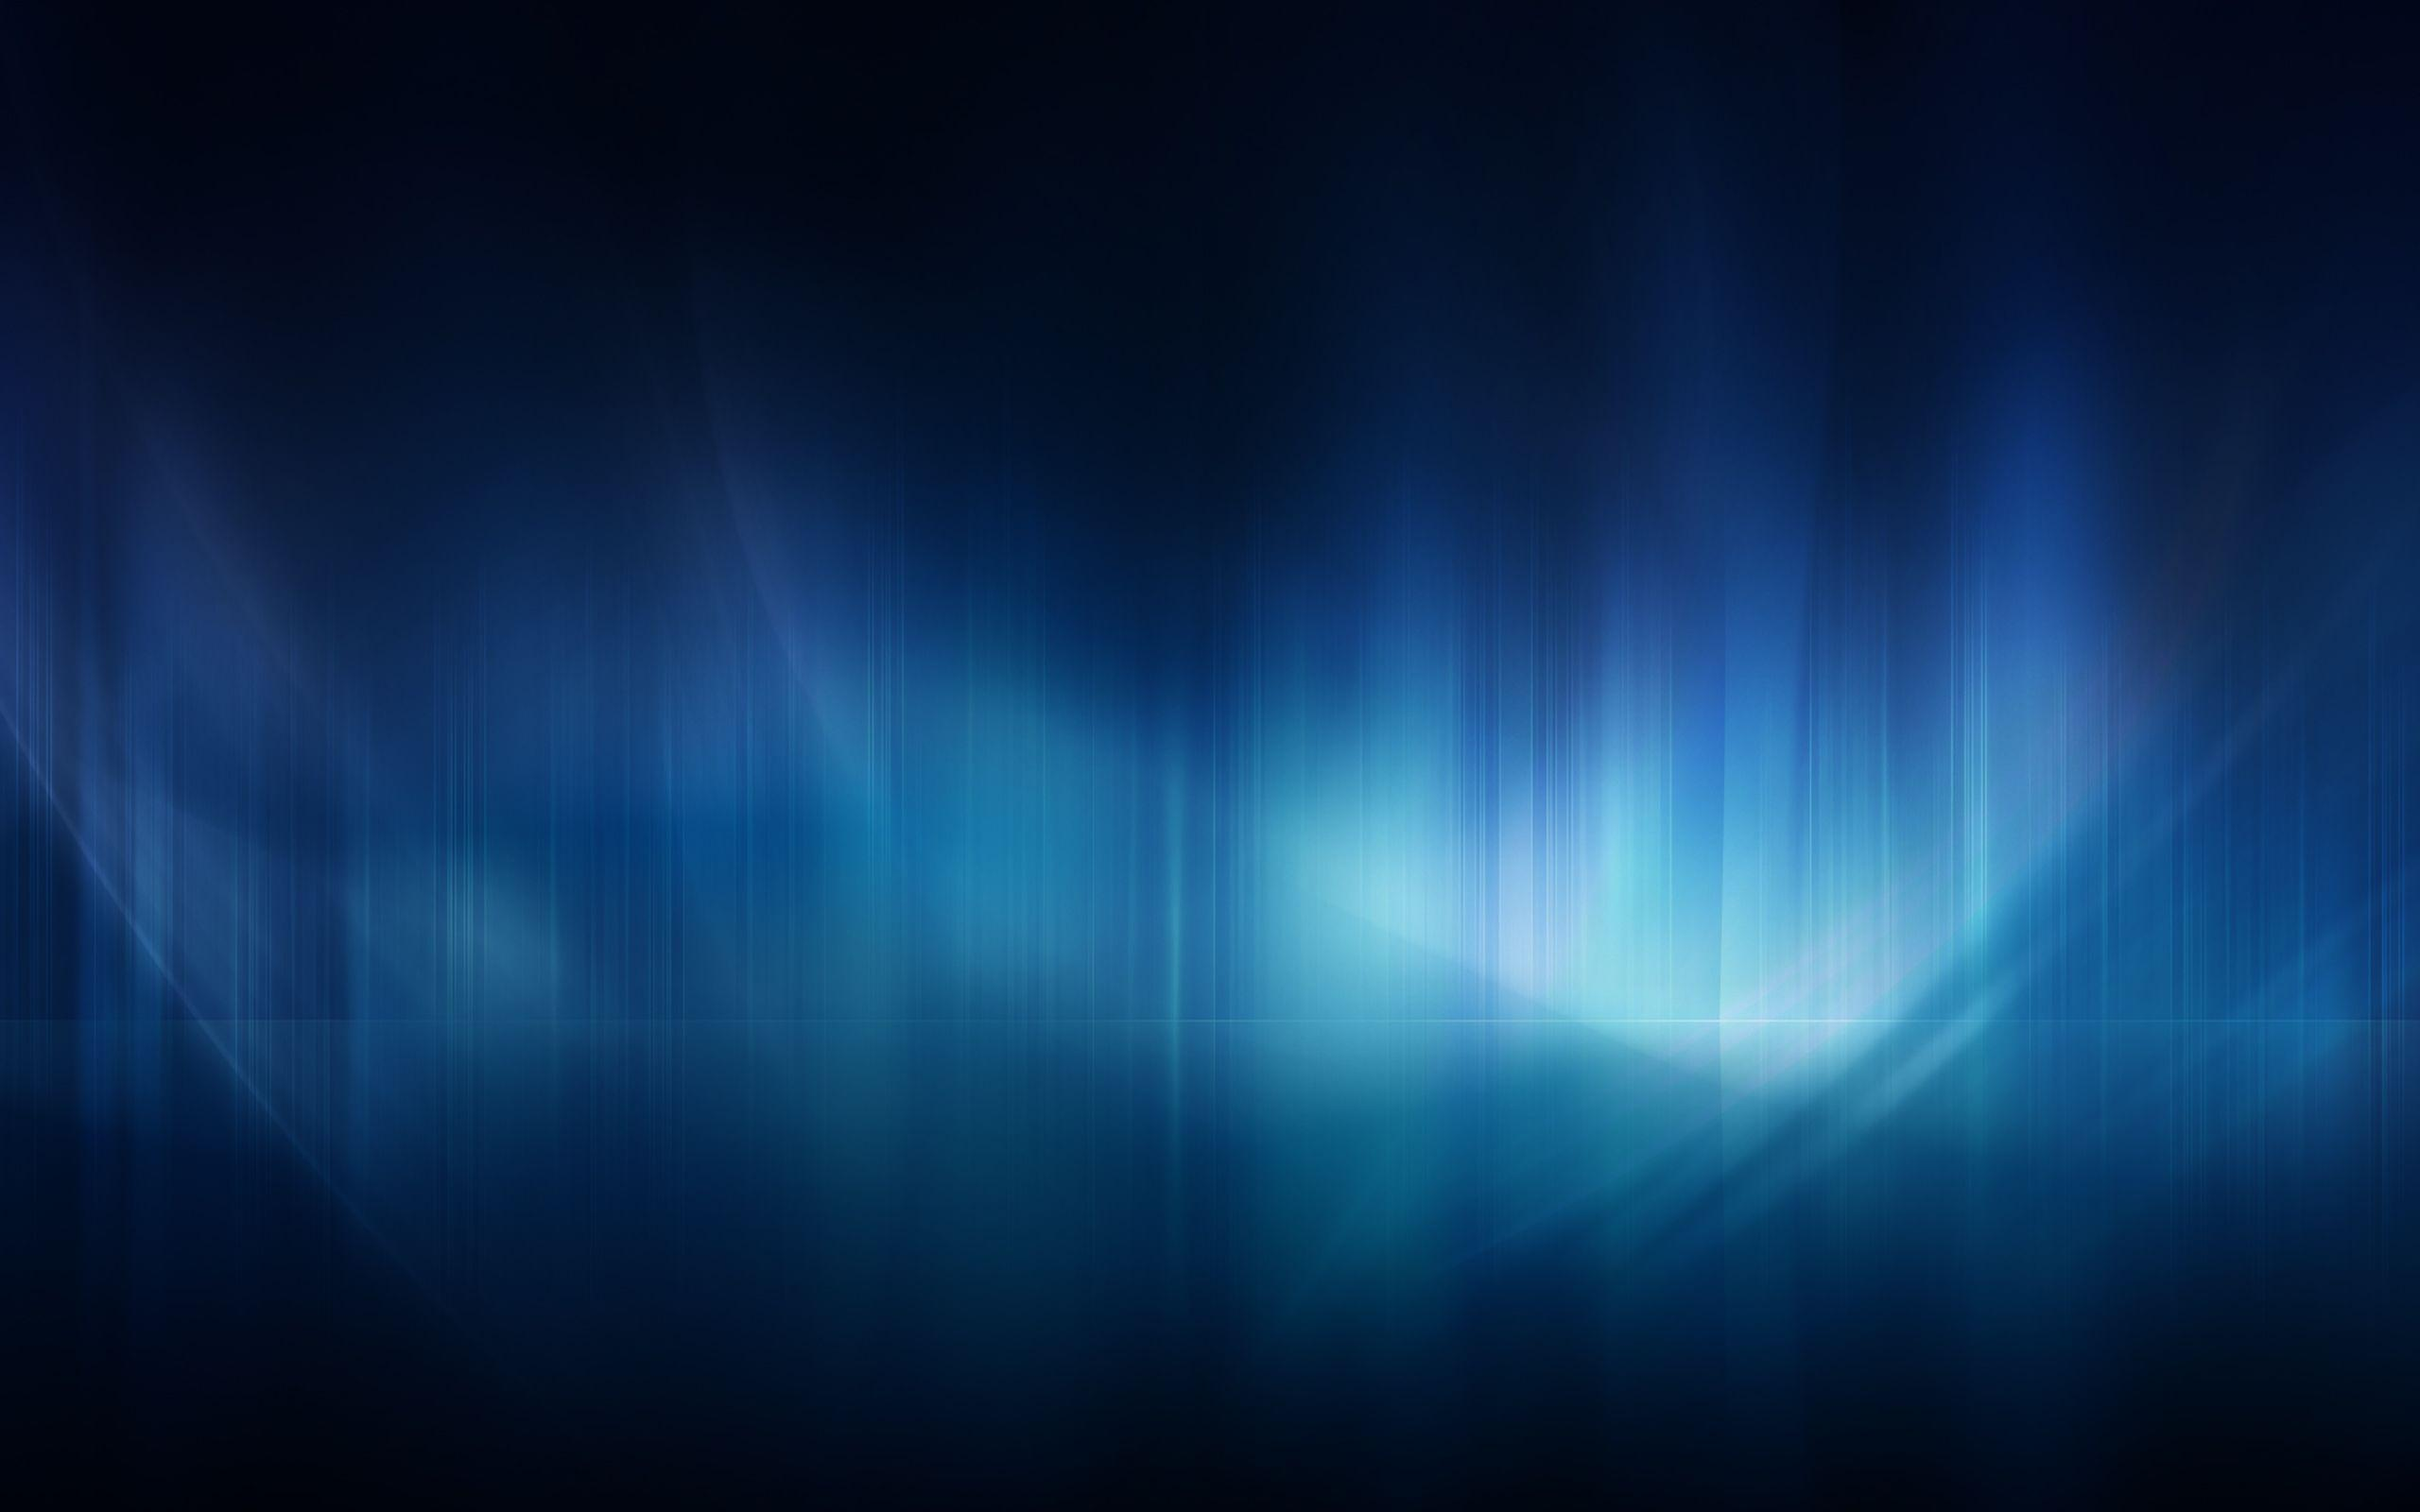 Blue And Black HD Wallpapers Backgrounds